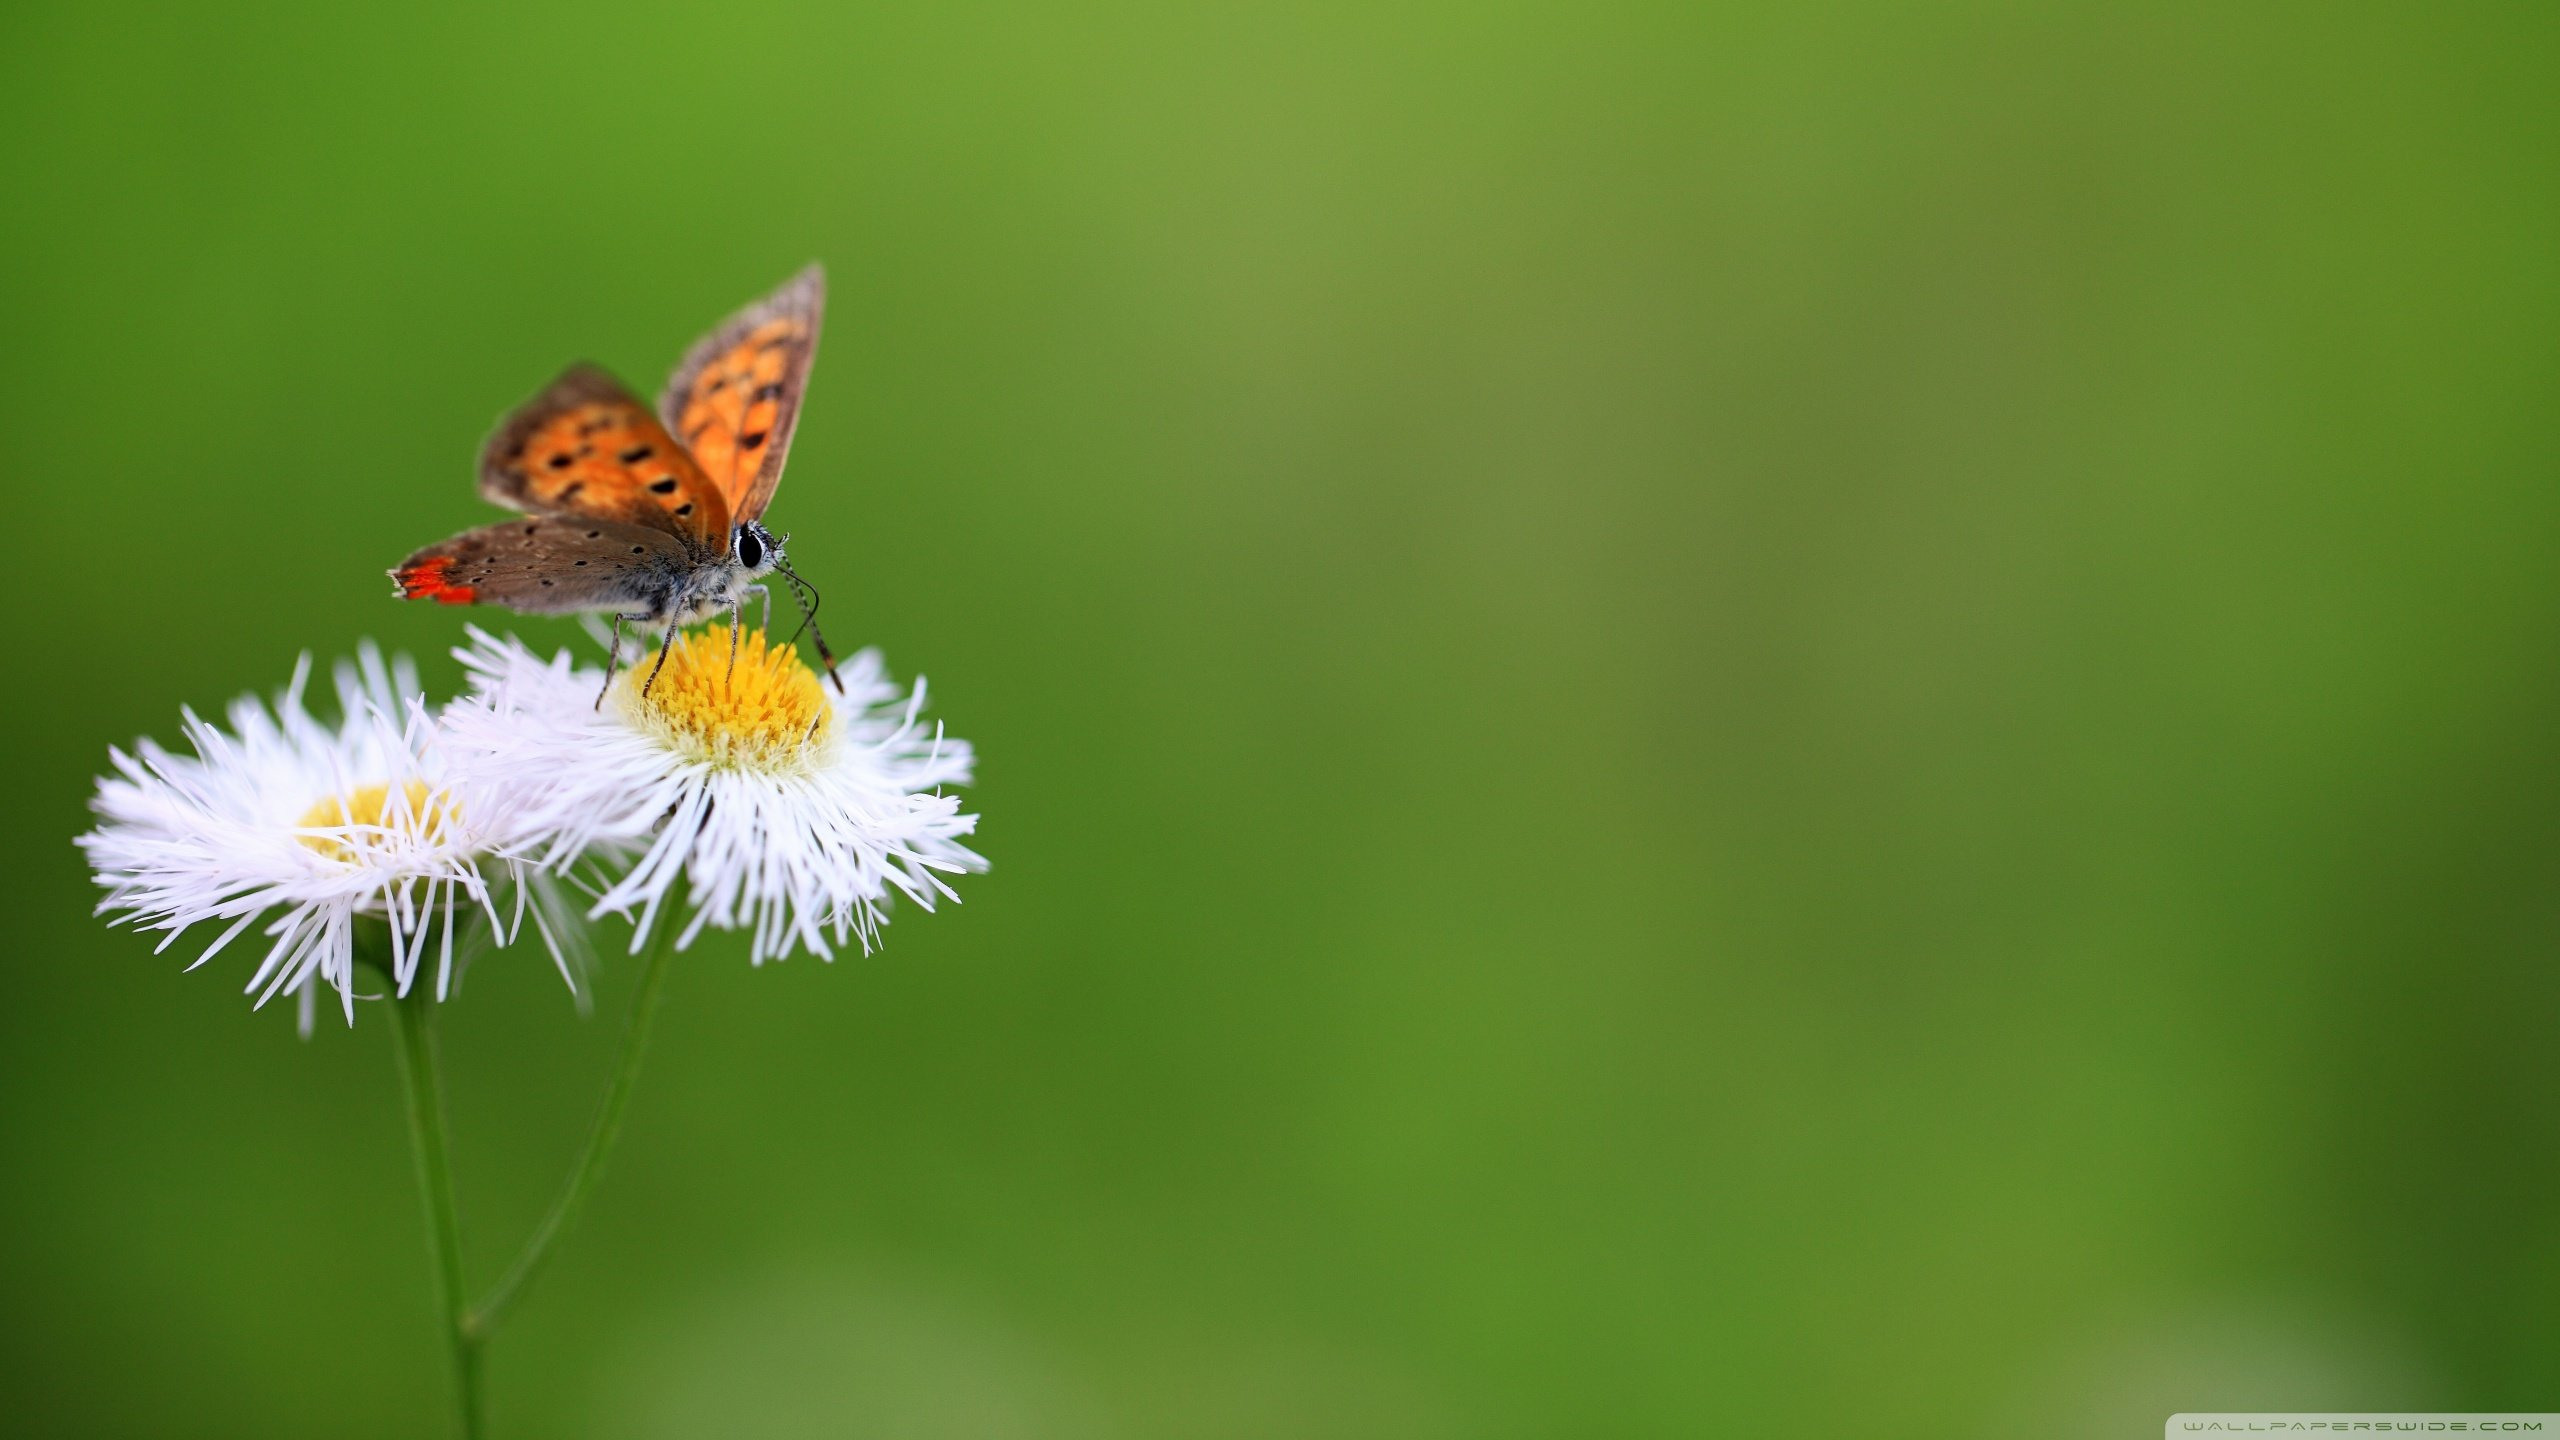 Download hd 2560x1440 Butterfly desktop background ID:168233 for free